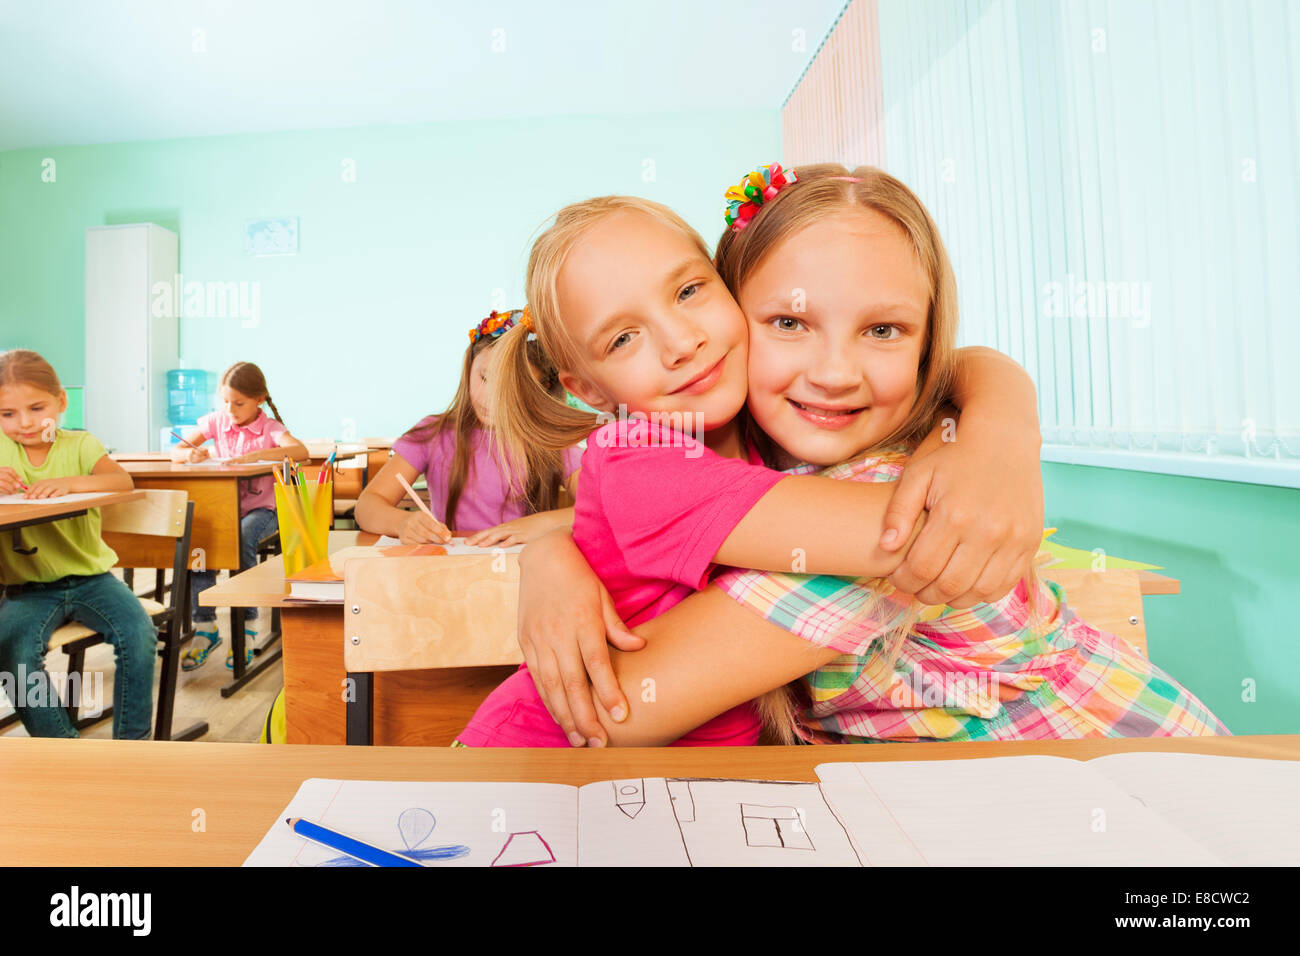 Happy girls in a cuddle sitting together at desk - Stock Image